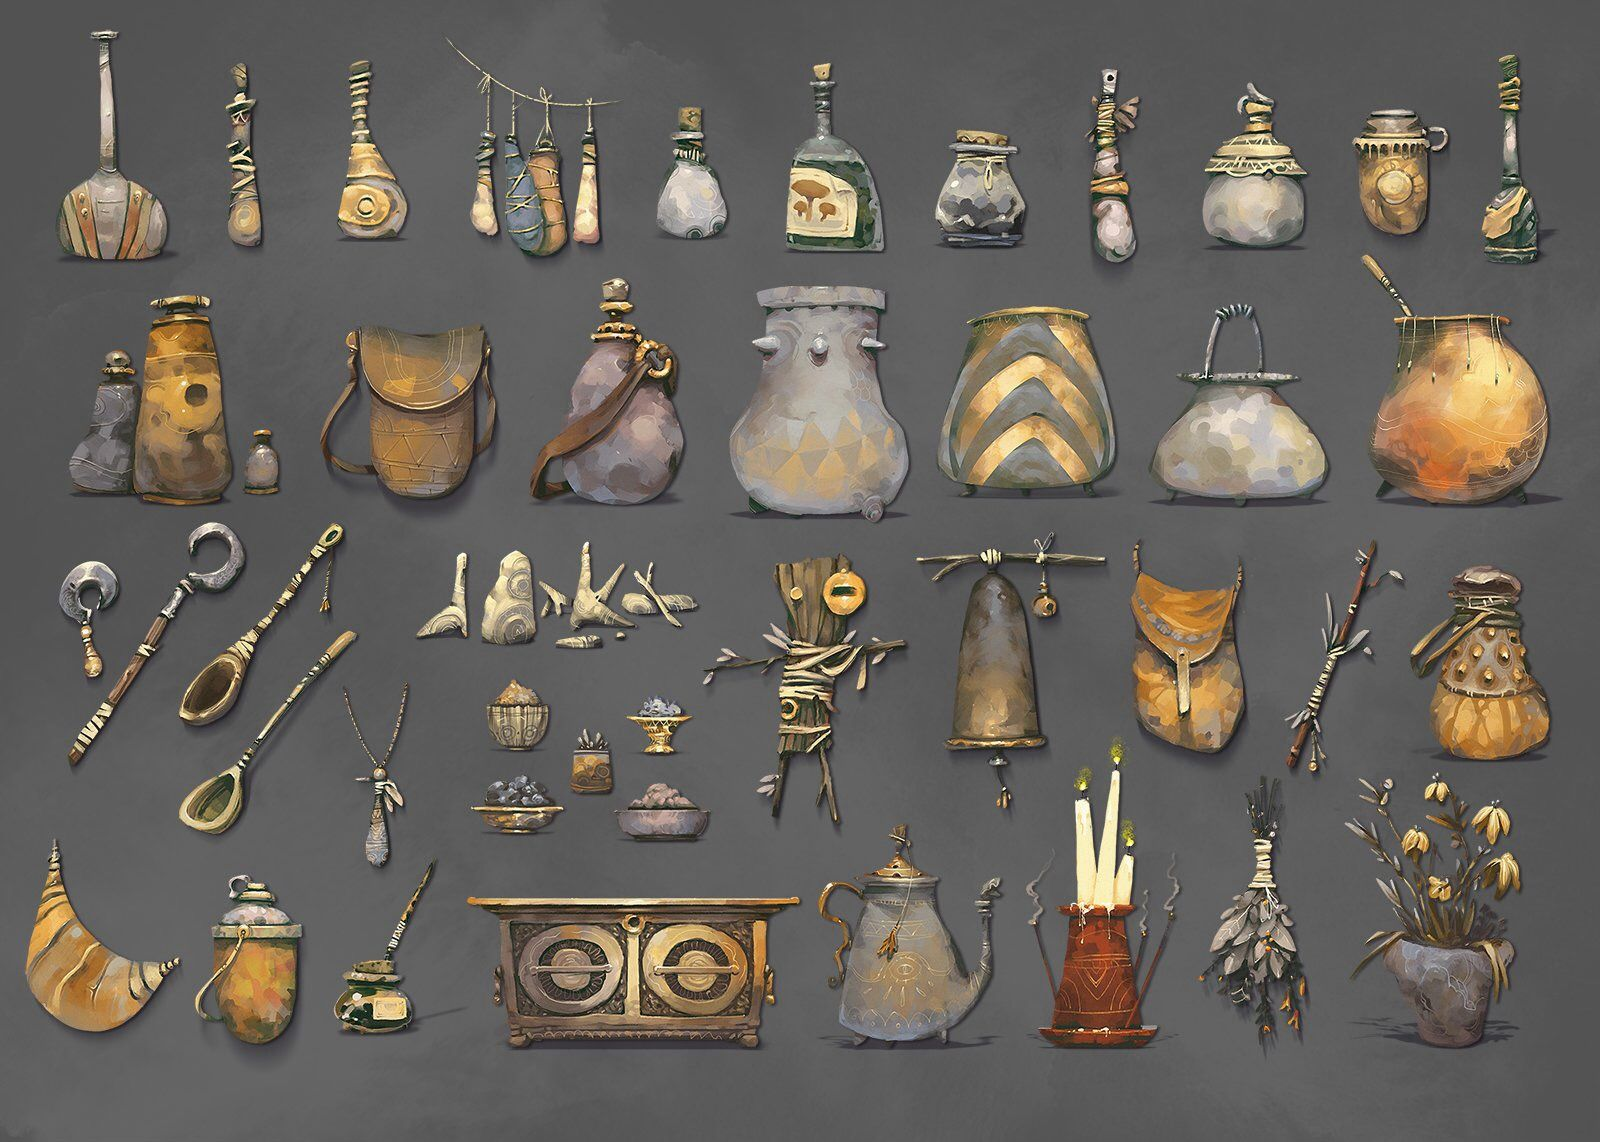 Pin by Alexey Rudikov on REF_ITEMS Props art, Props